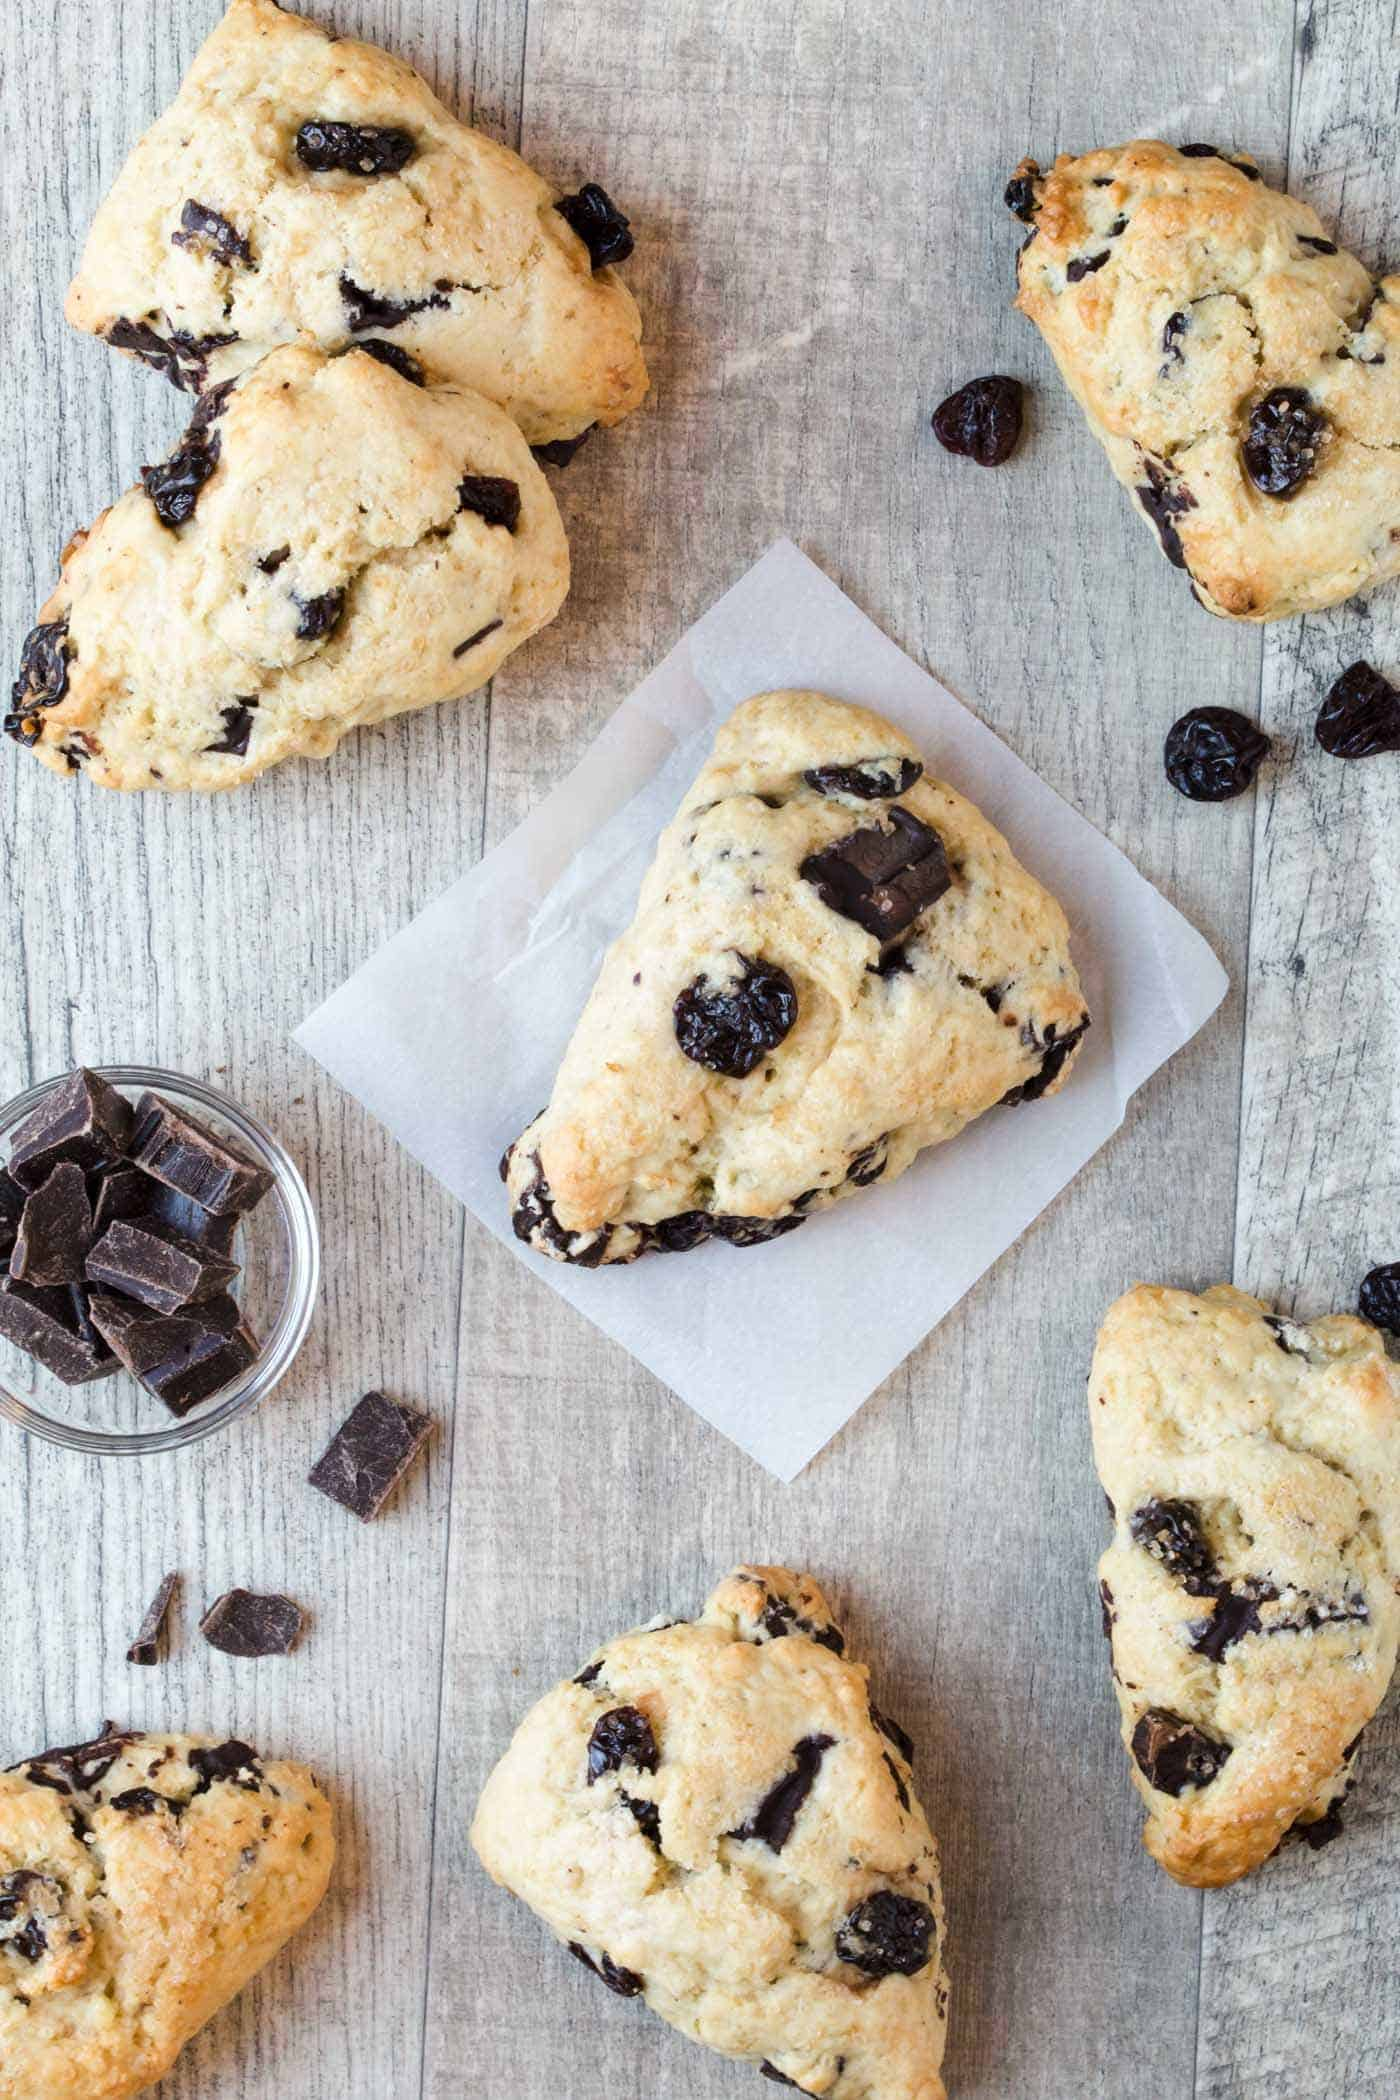 This recipe for Dark Chocolate Cherry Scones is perfect for brunch or even dessert!